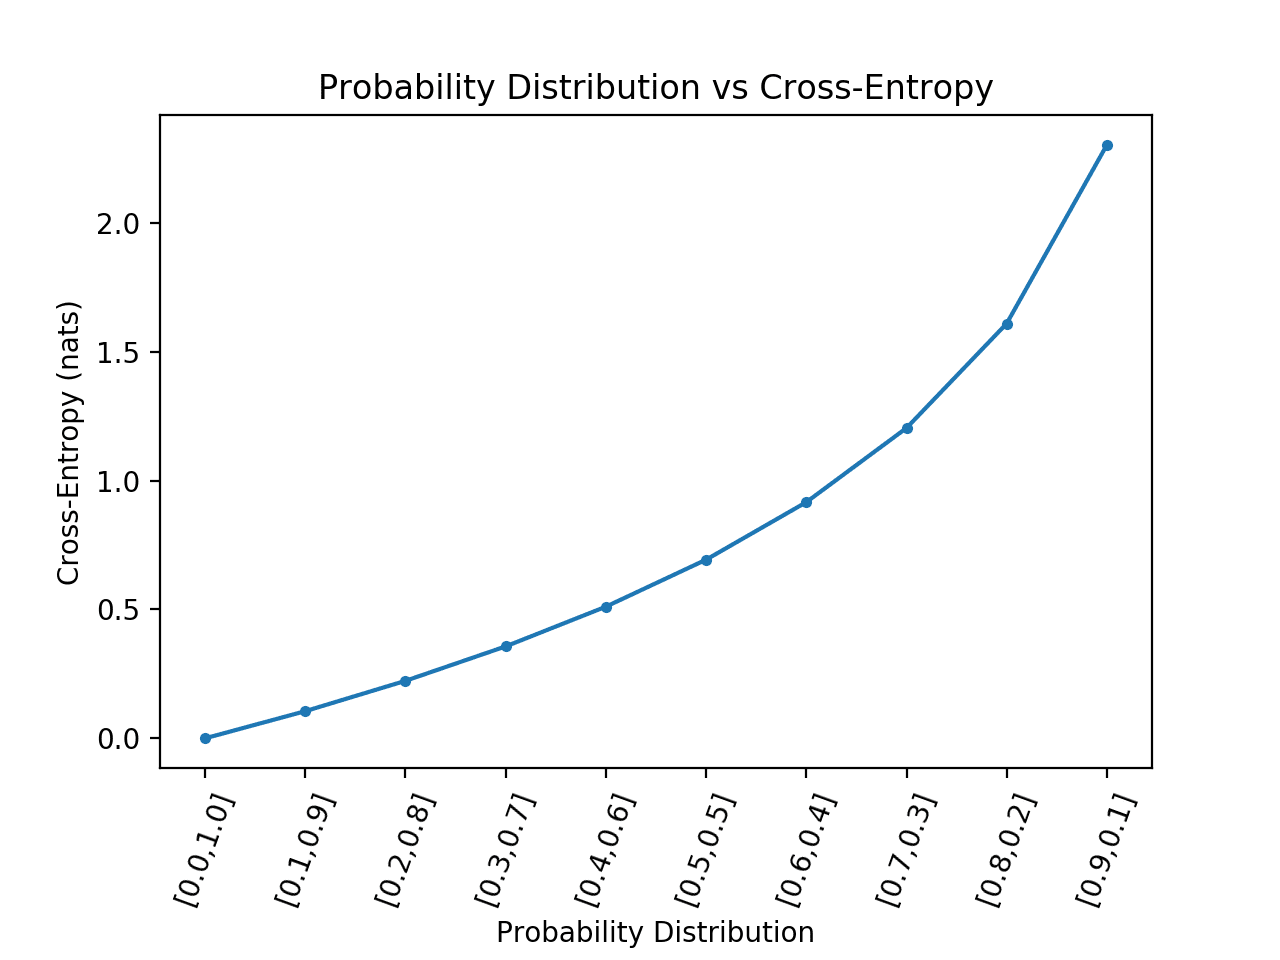 Line Plot of Probability Distribution vs Cross-Entropy for a Binary Classification Task With Extreme Case Removed